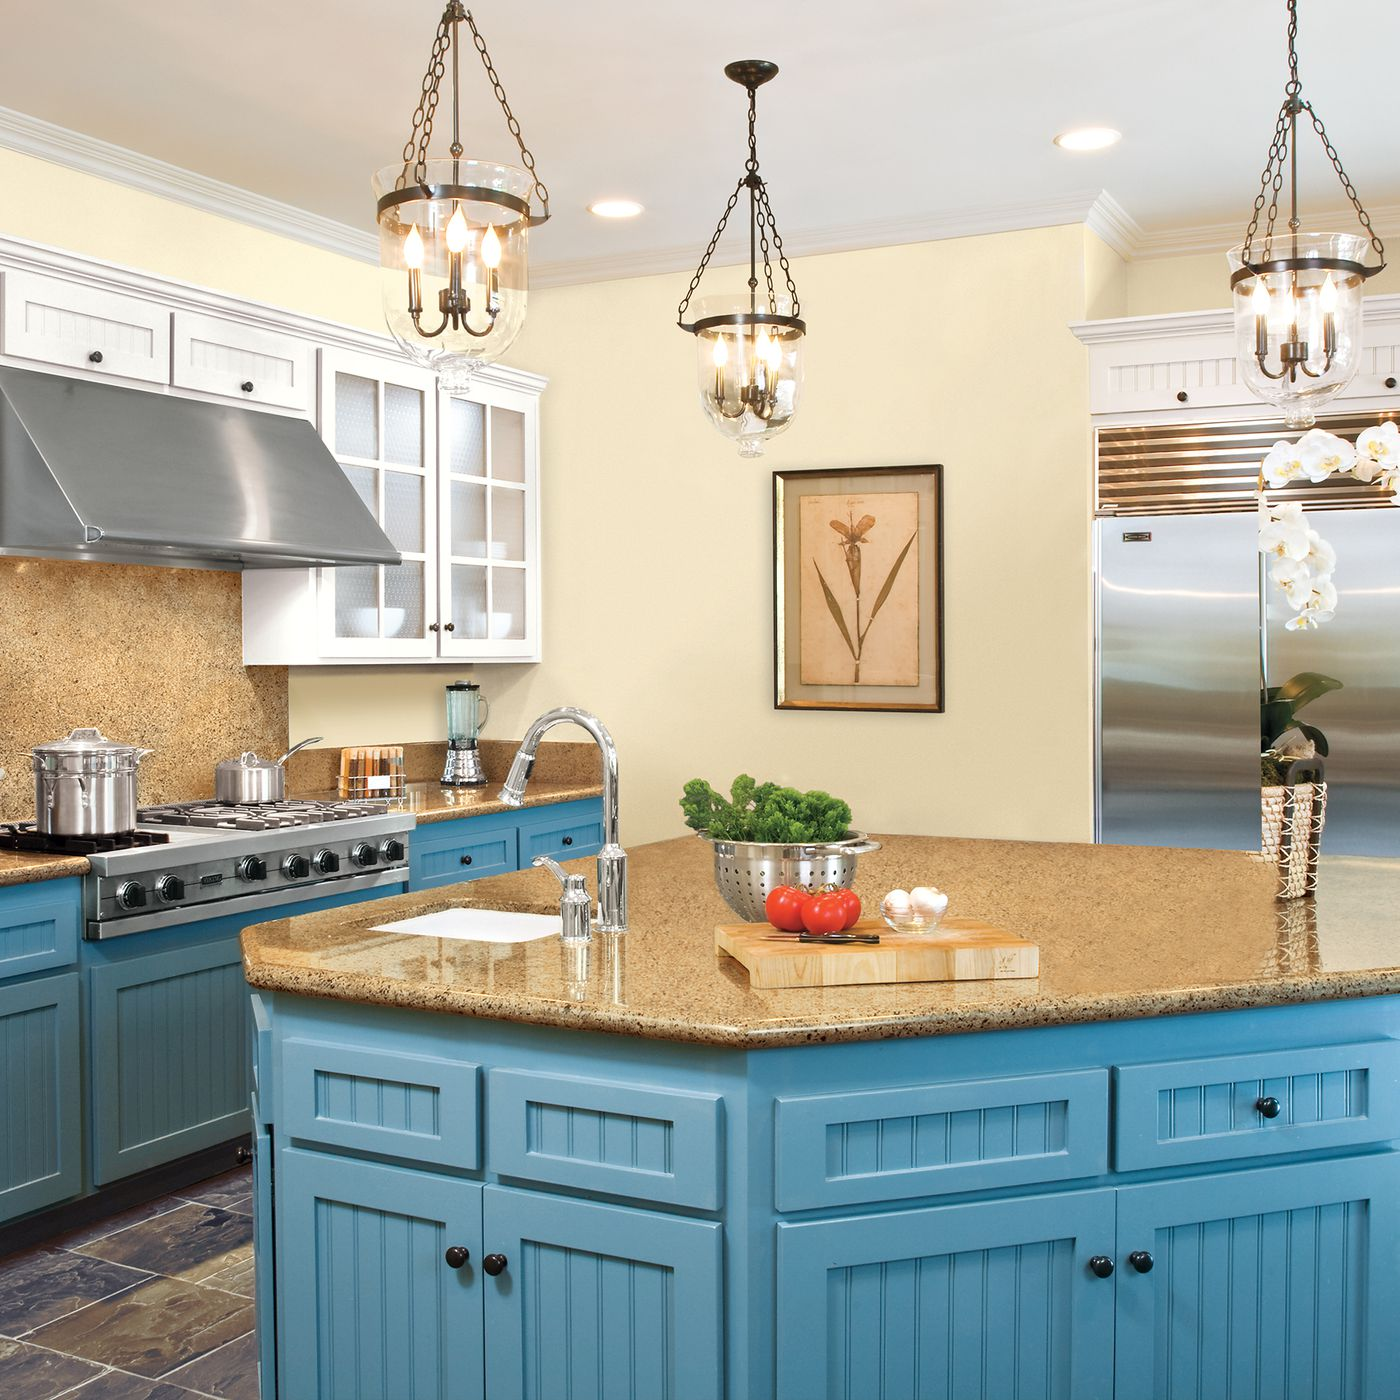 All About Stone Countertops - This Old House